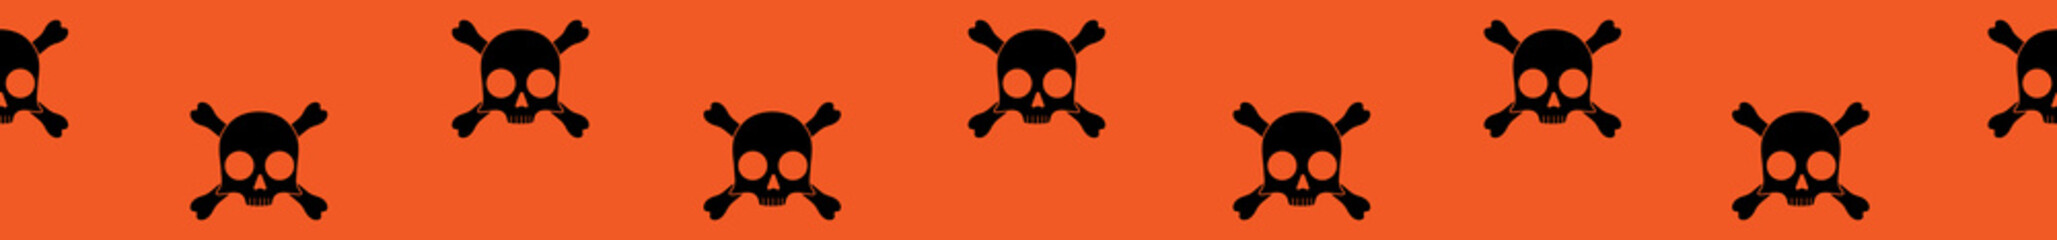 Long web seamless banner with skull and crossbones icon on orange background. Vector illustration.